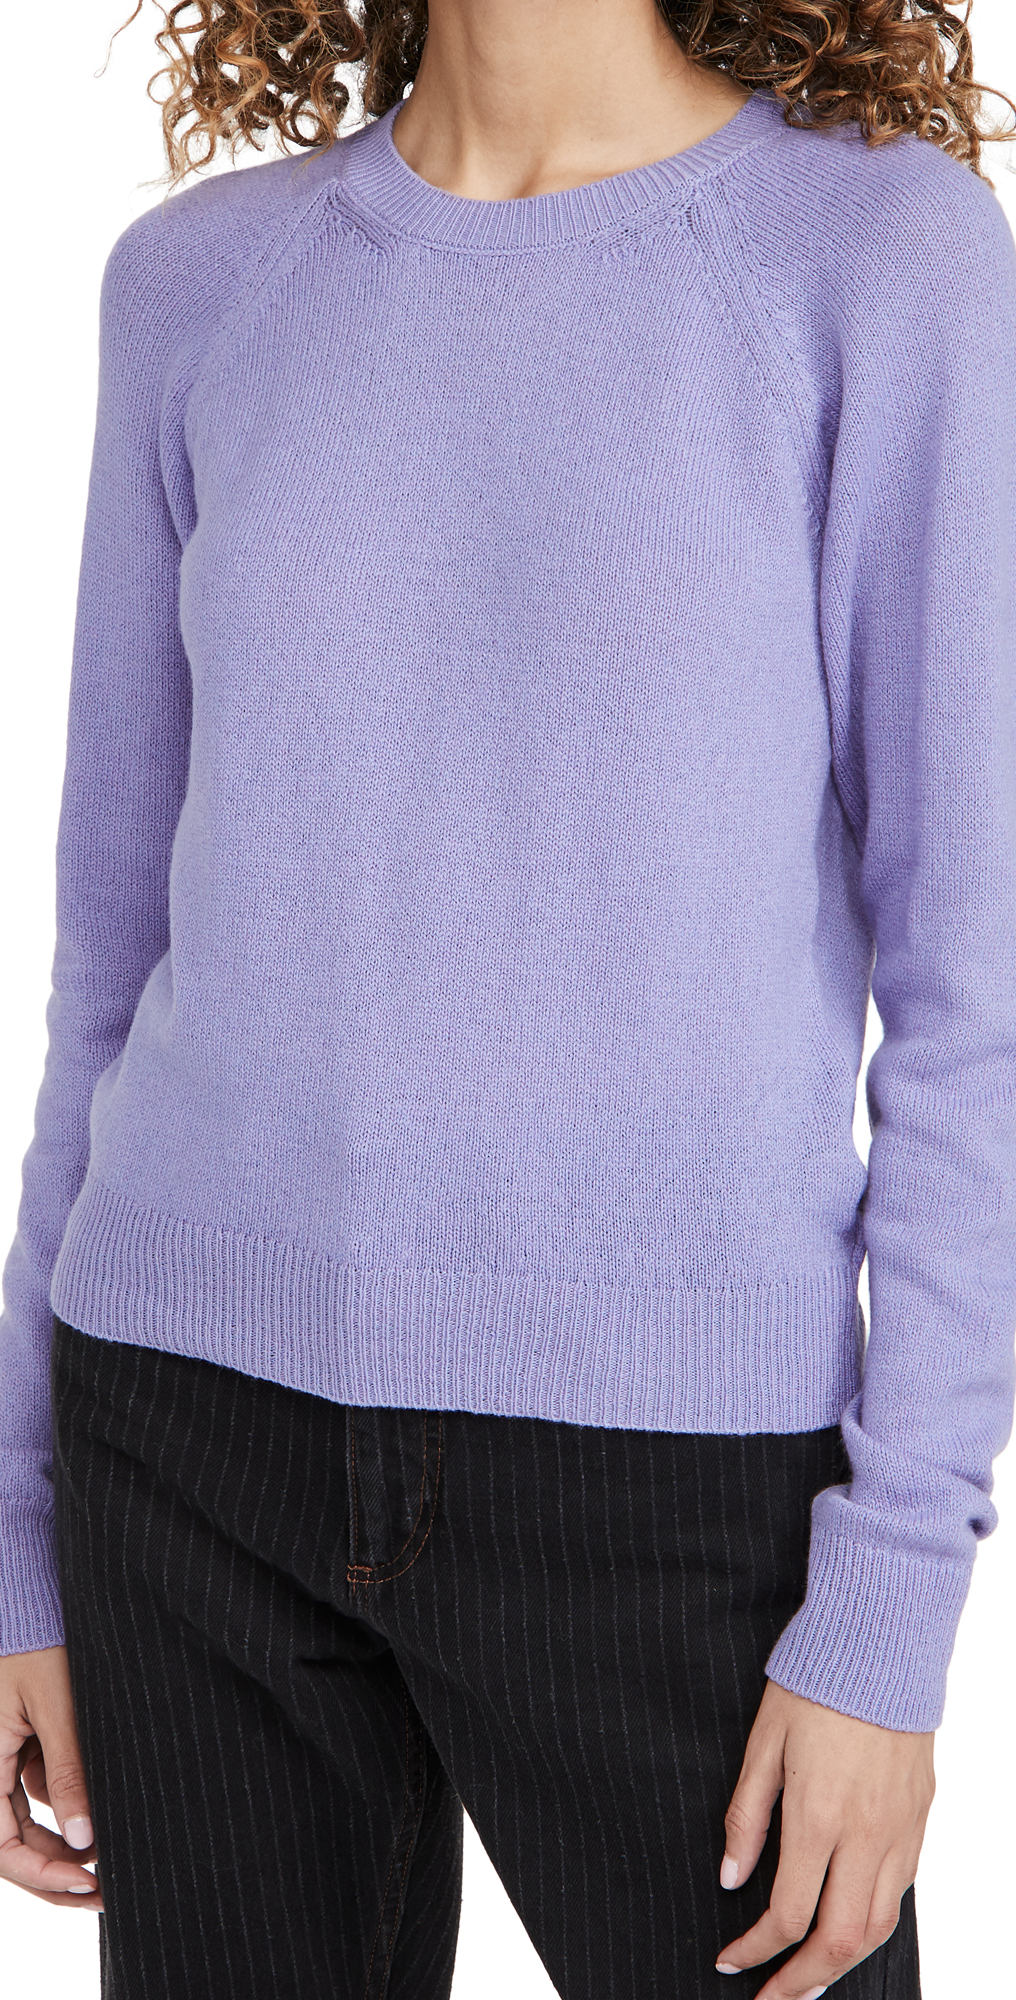 A.P.C. Pullover Axelle Sweater